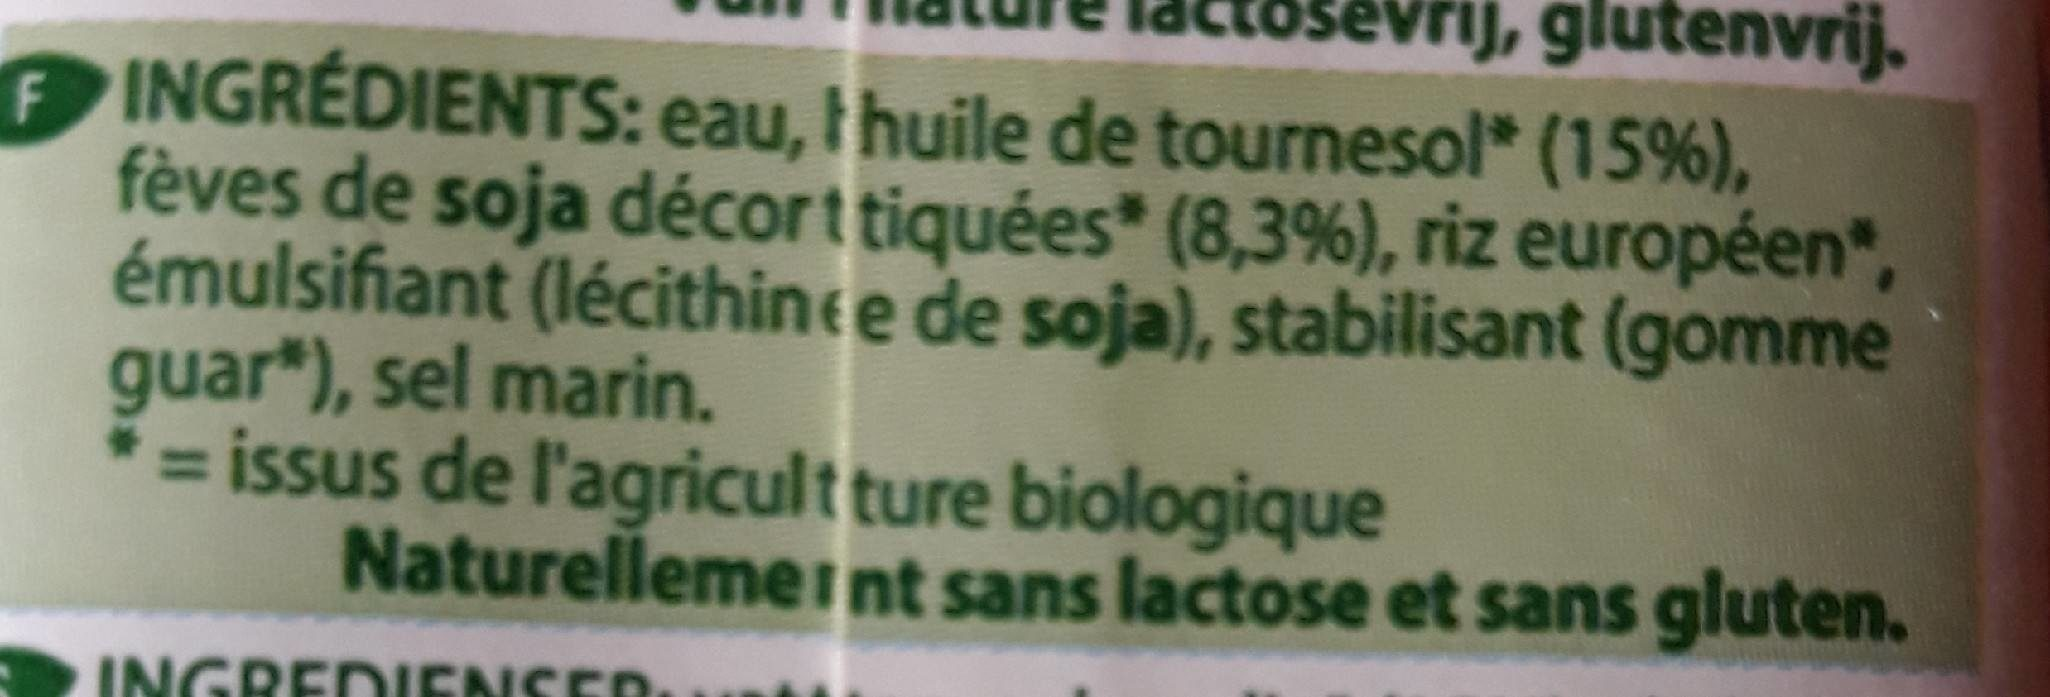 Soya Cusine - Ingredients - fr